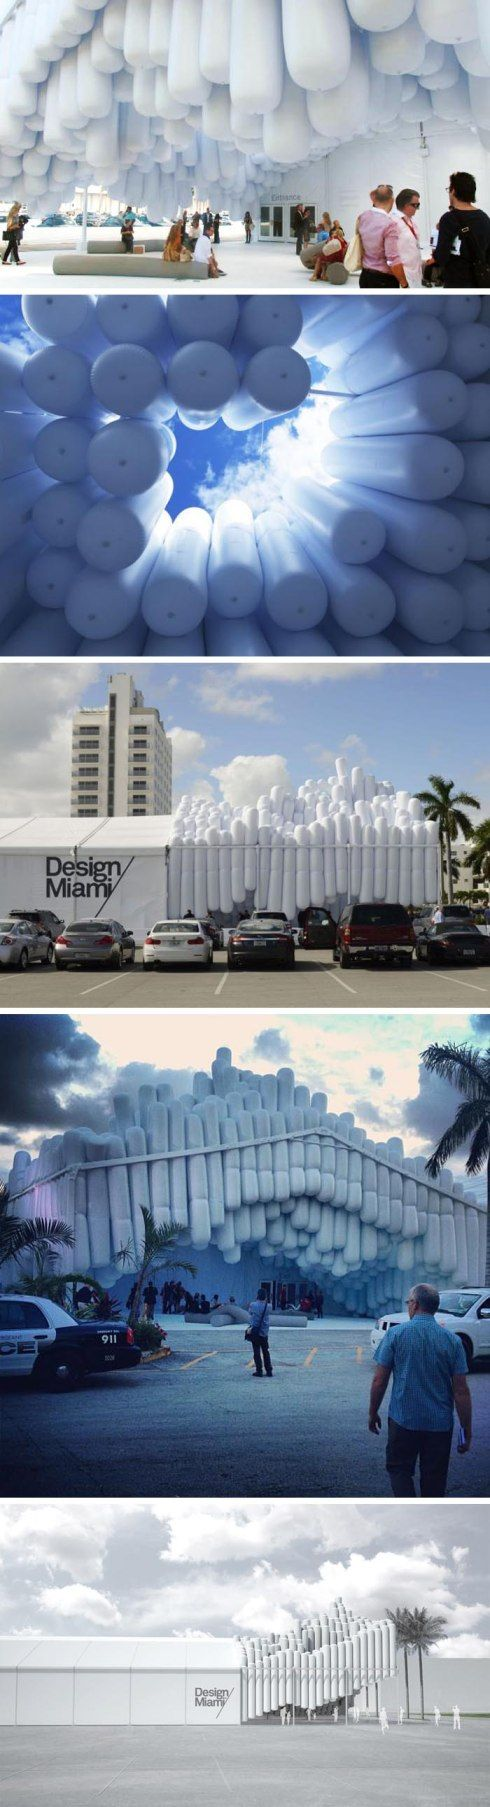 Design Miami 2012, Cool entrance installation by Daniel Arsham, Snarkitecture, Drift